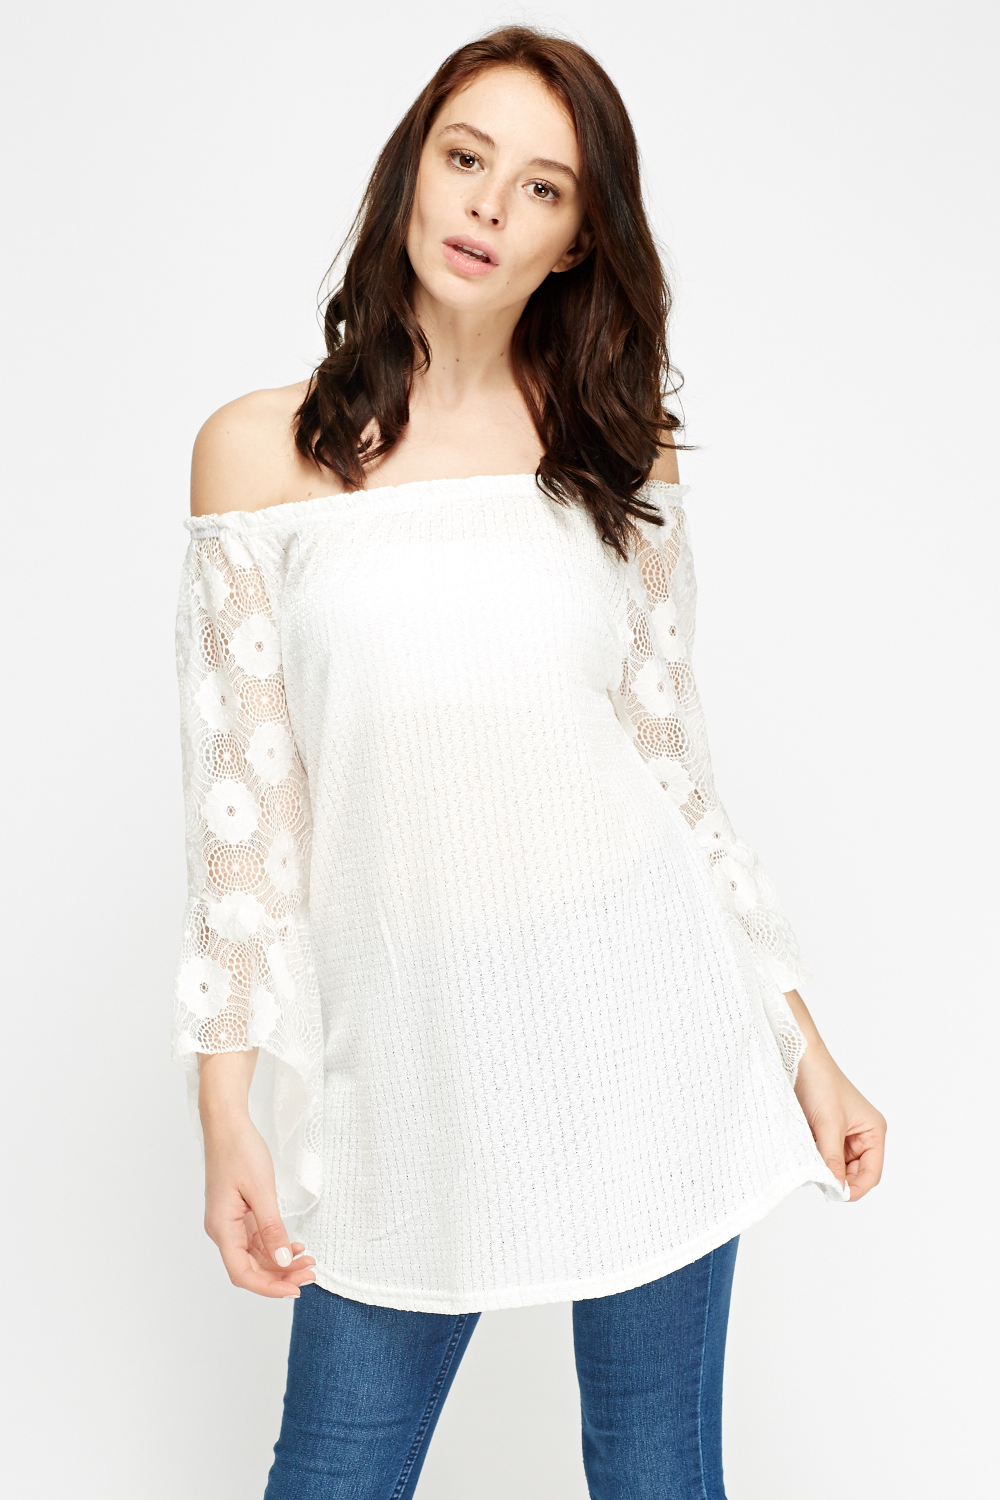 Find your favorite Women's White Lace Top or Juniors White Lace Top when you shop at Macy's. Macy's Presents: The Edit - A curated mix of fashion and inspiration Check It Out Free Shipping with $99 purchase + Free Store Pickup.